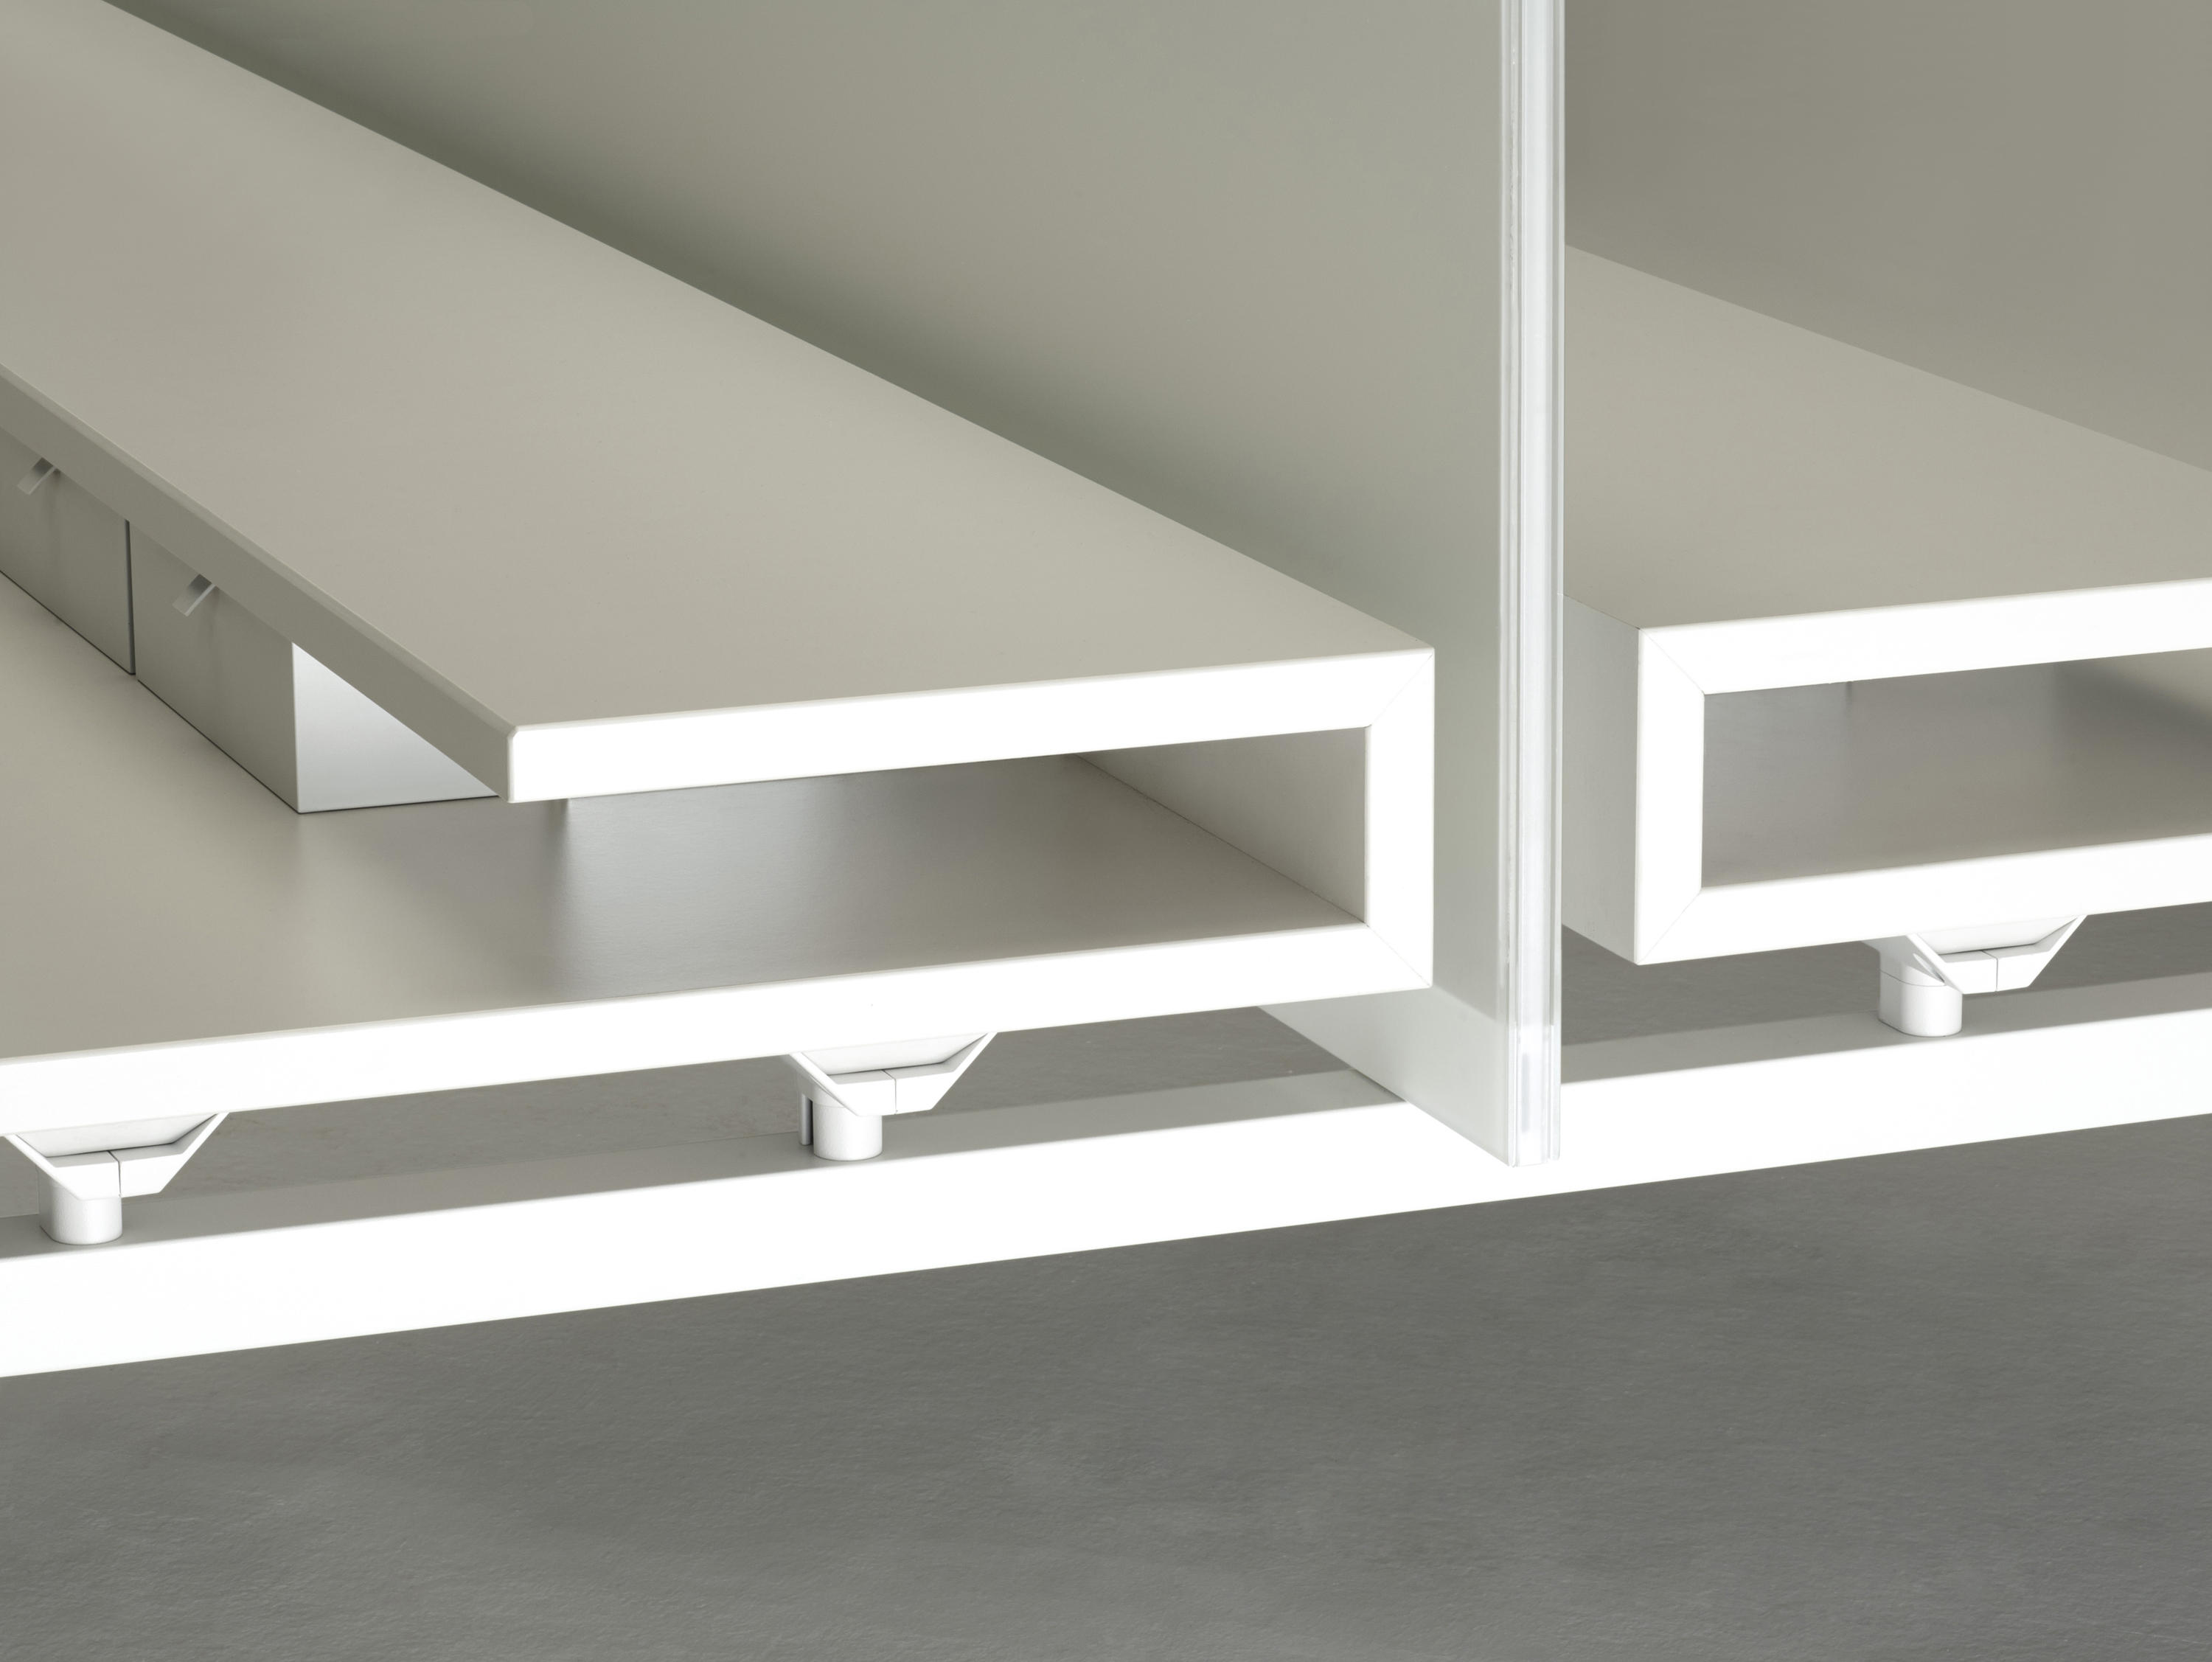 Mdl system table dividers from unifor architonic for Unifor turate